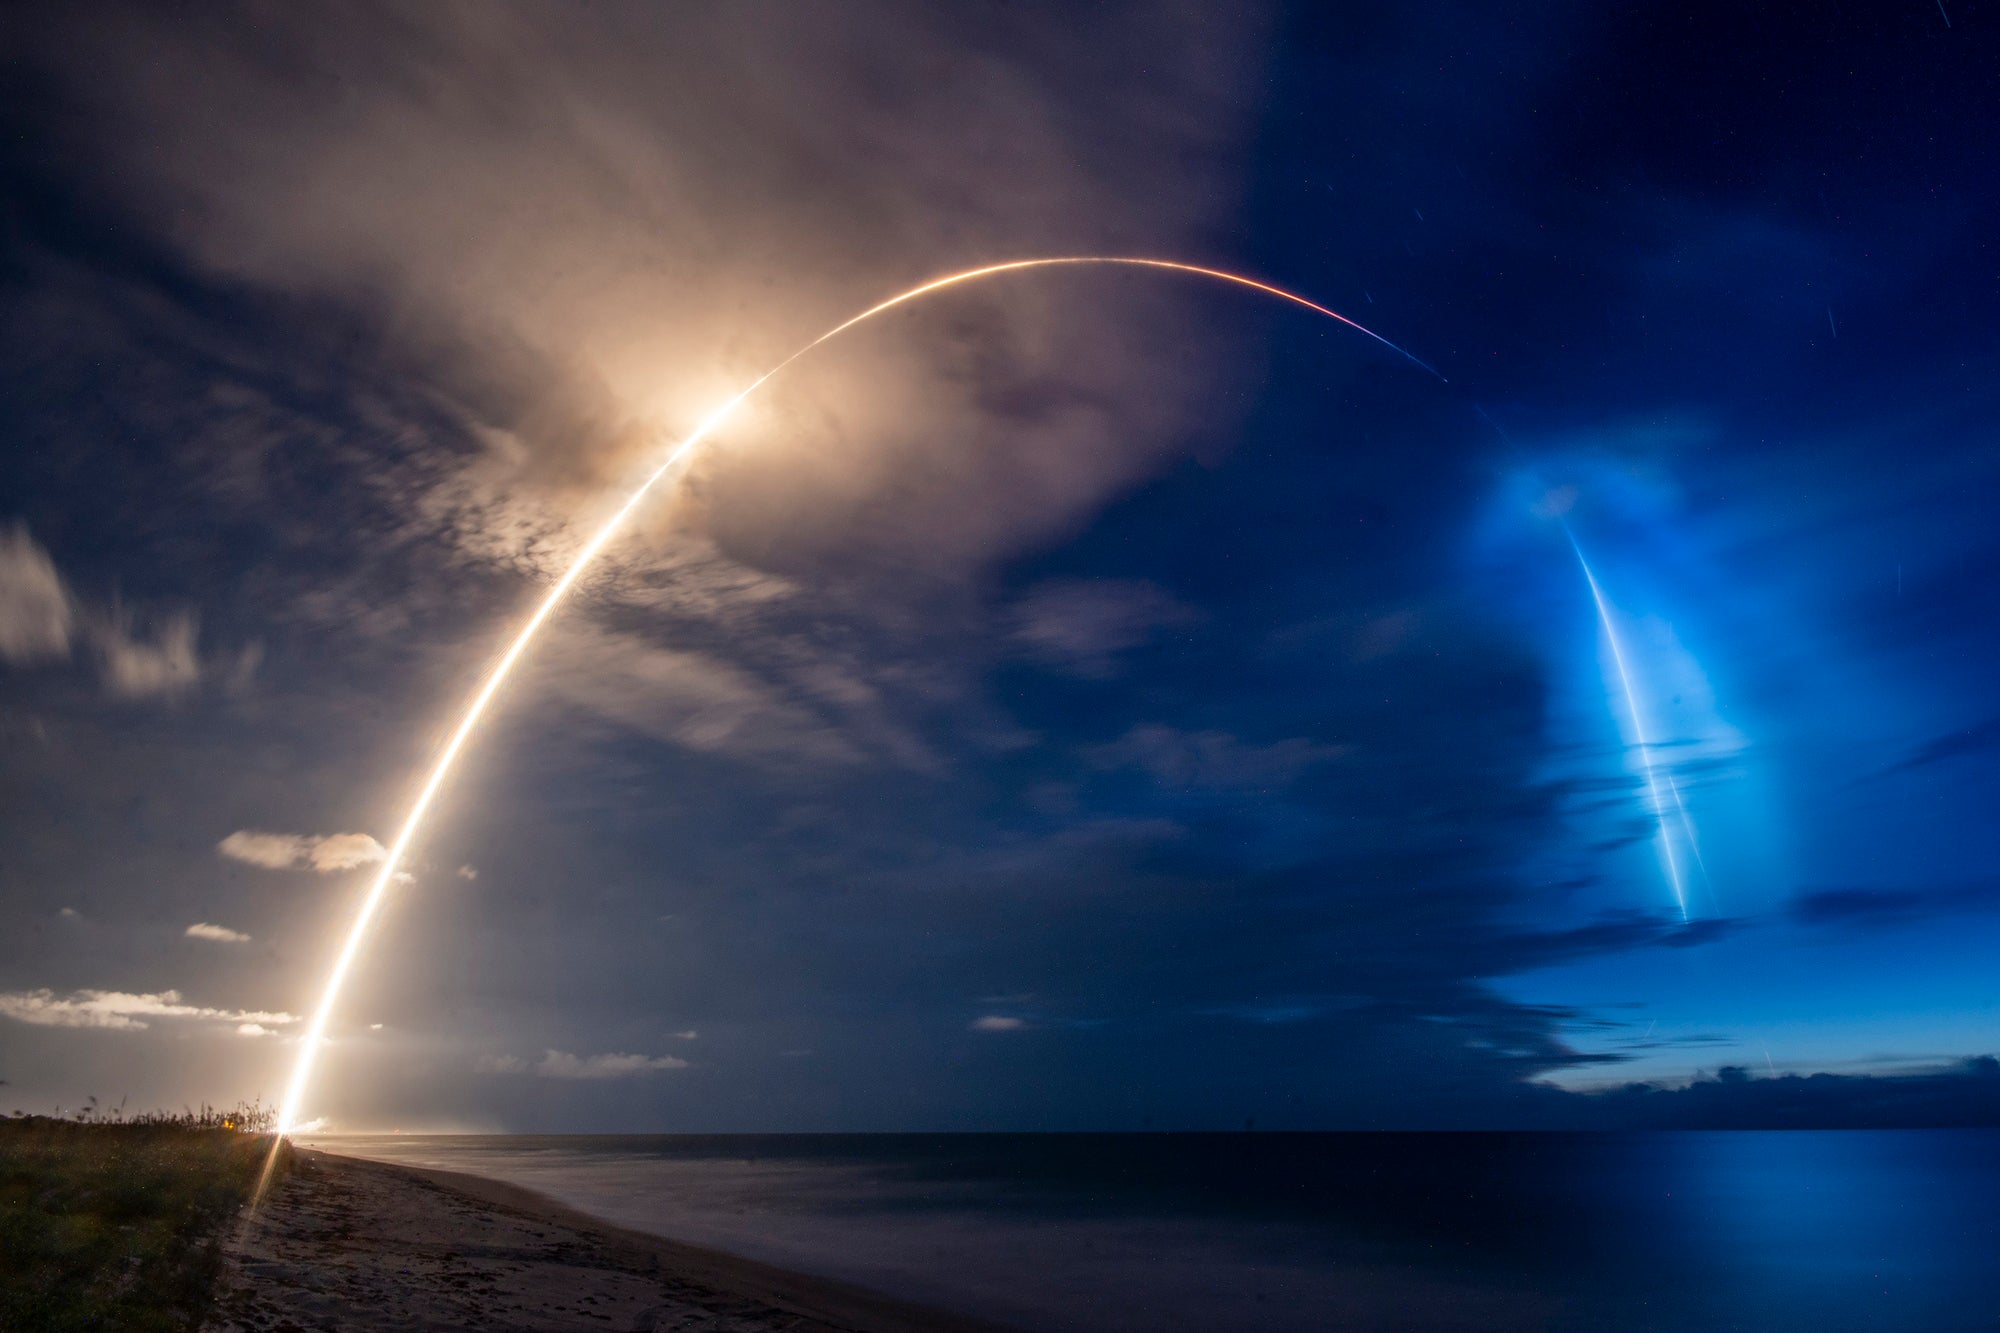 A previously-flown SpaceX Falcon 9 rocket successfully deploys Starlink and Planet satellites